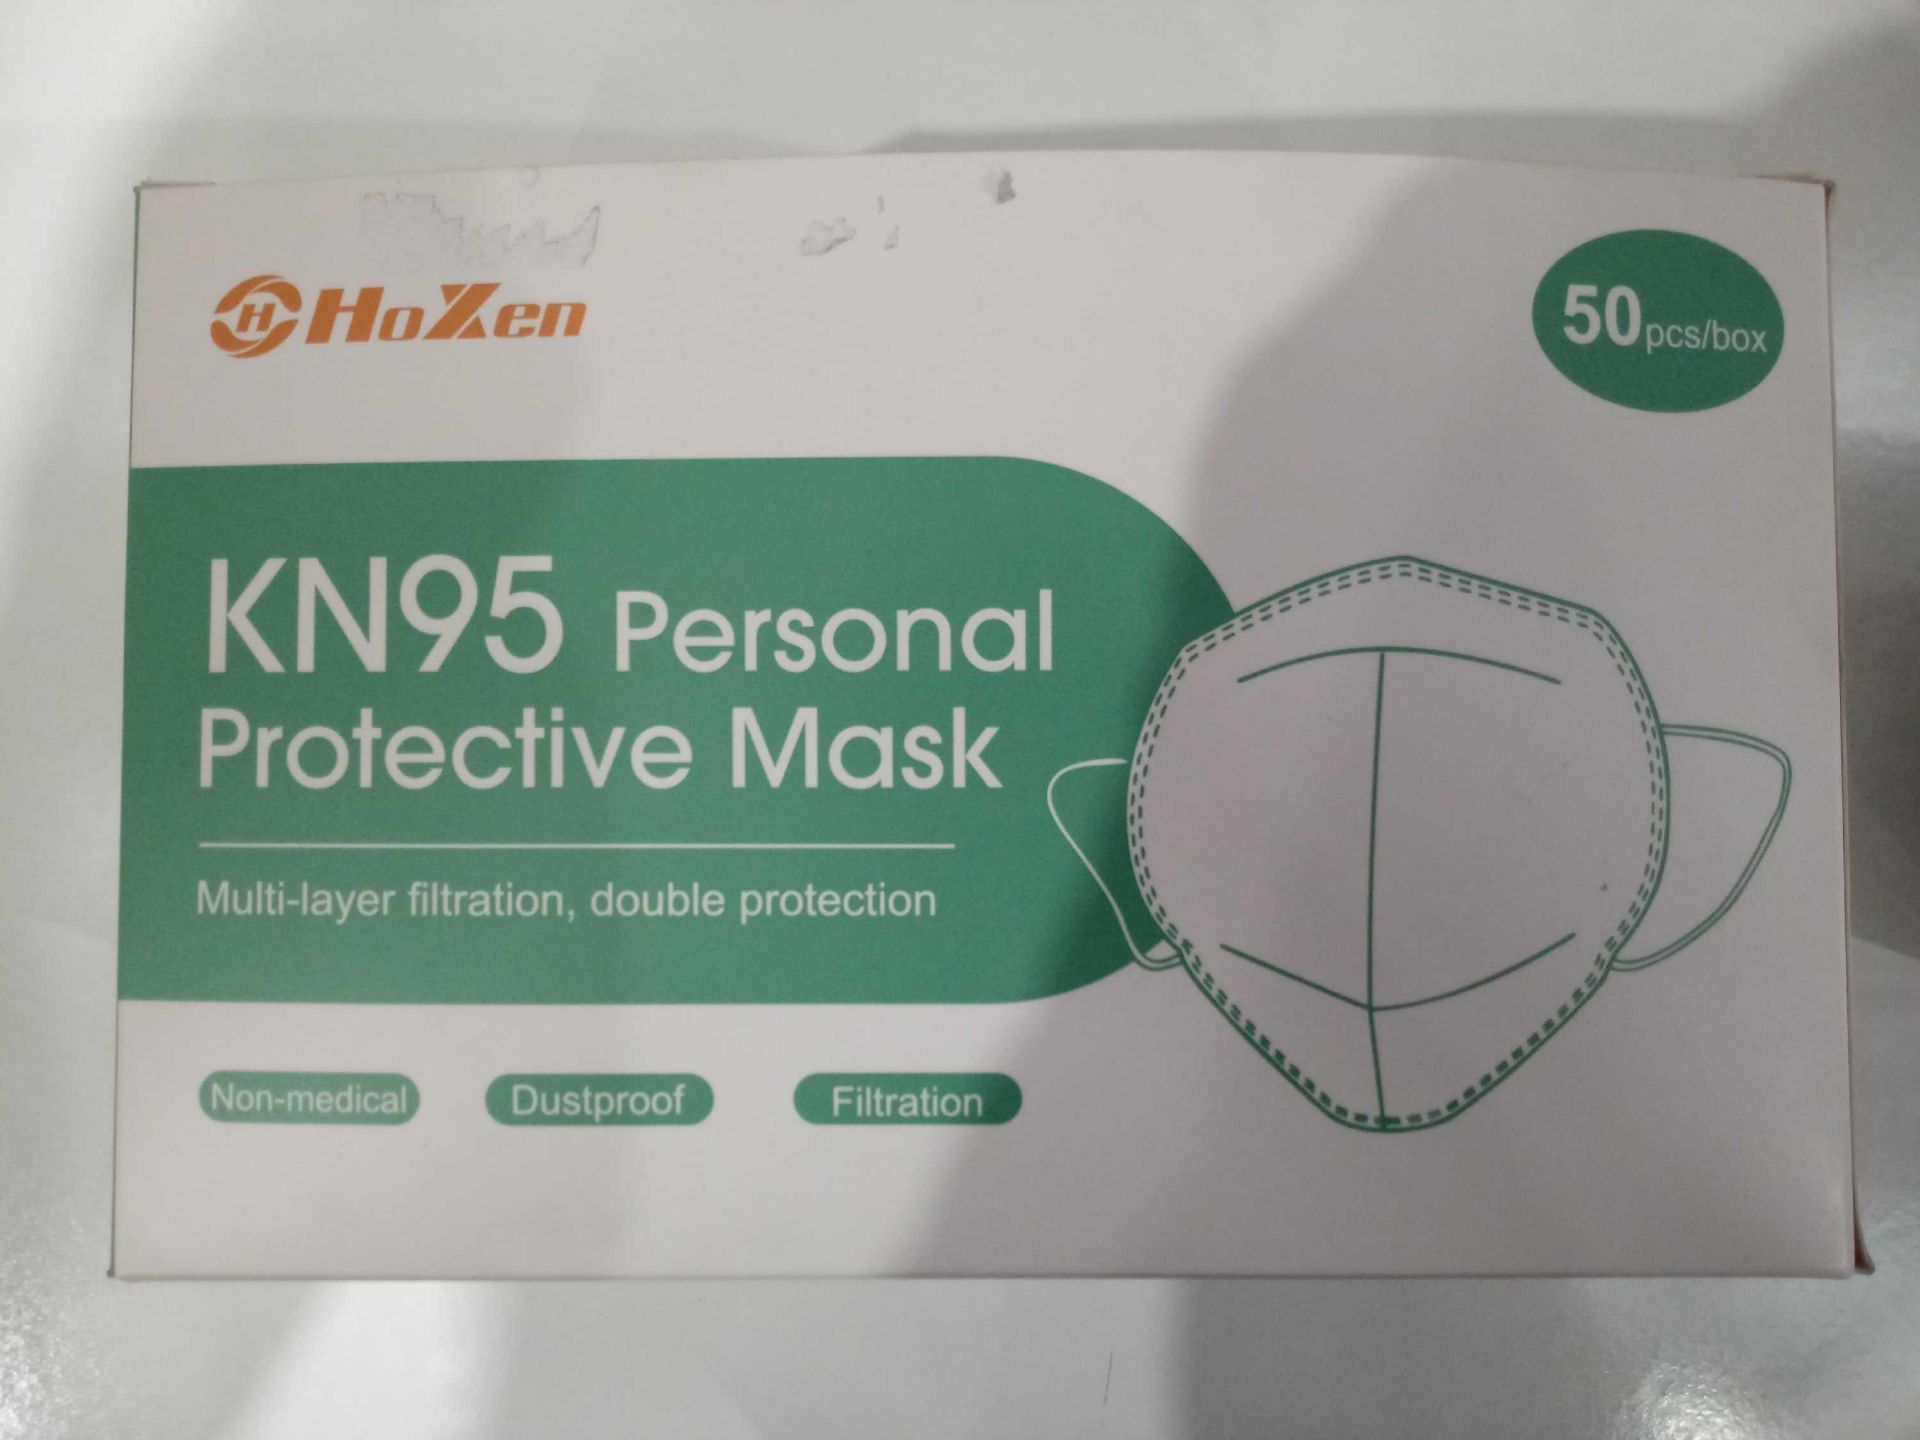 Lot 373 - Box of KN95 personal protective masks